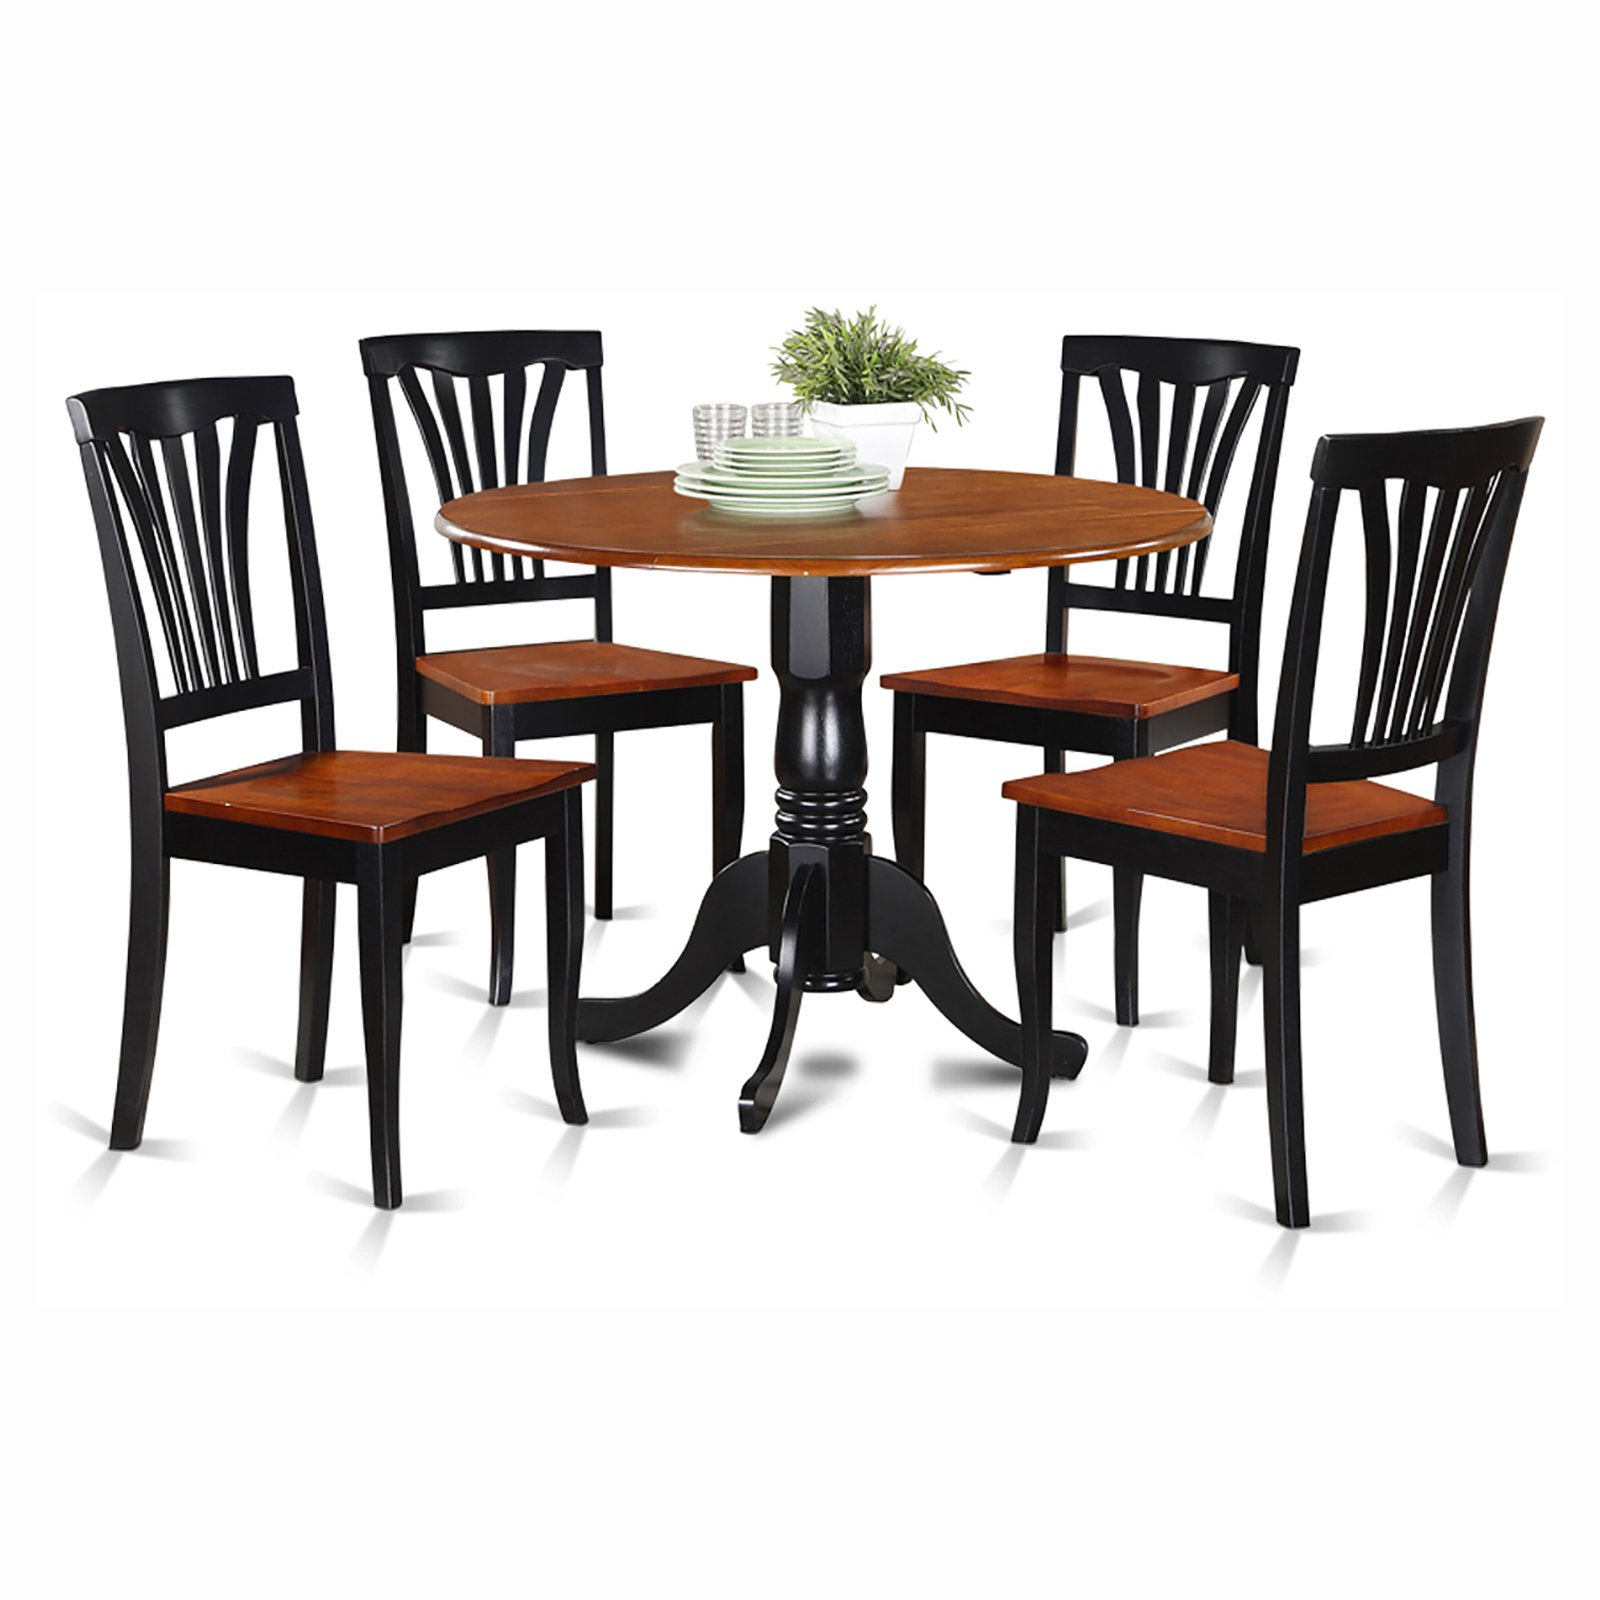 East West Furniture Dublin 5 Piece Drop Leaf Dining Table Set with Avon Wooden Seat Chairs